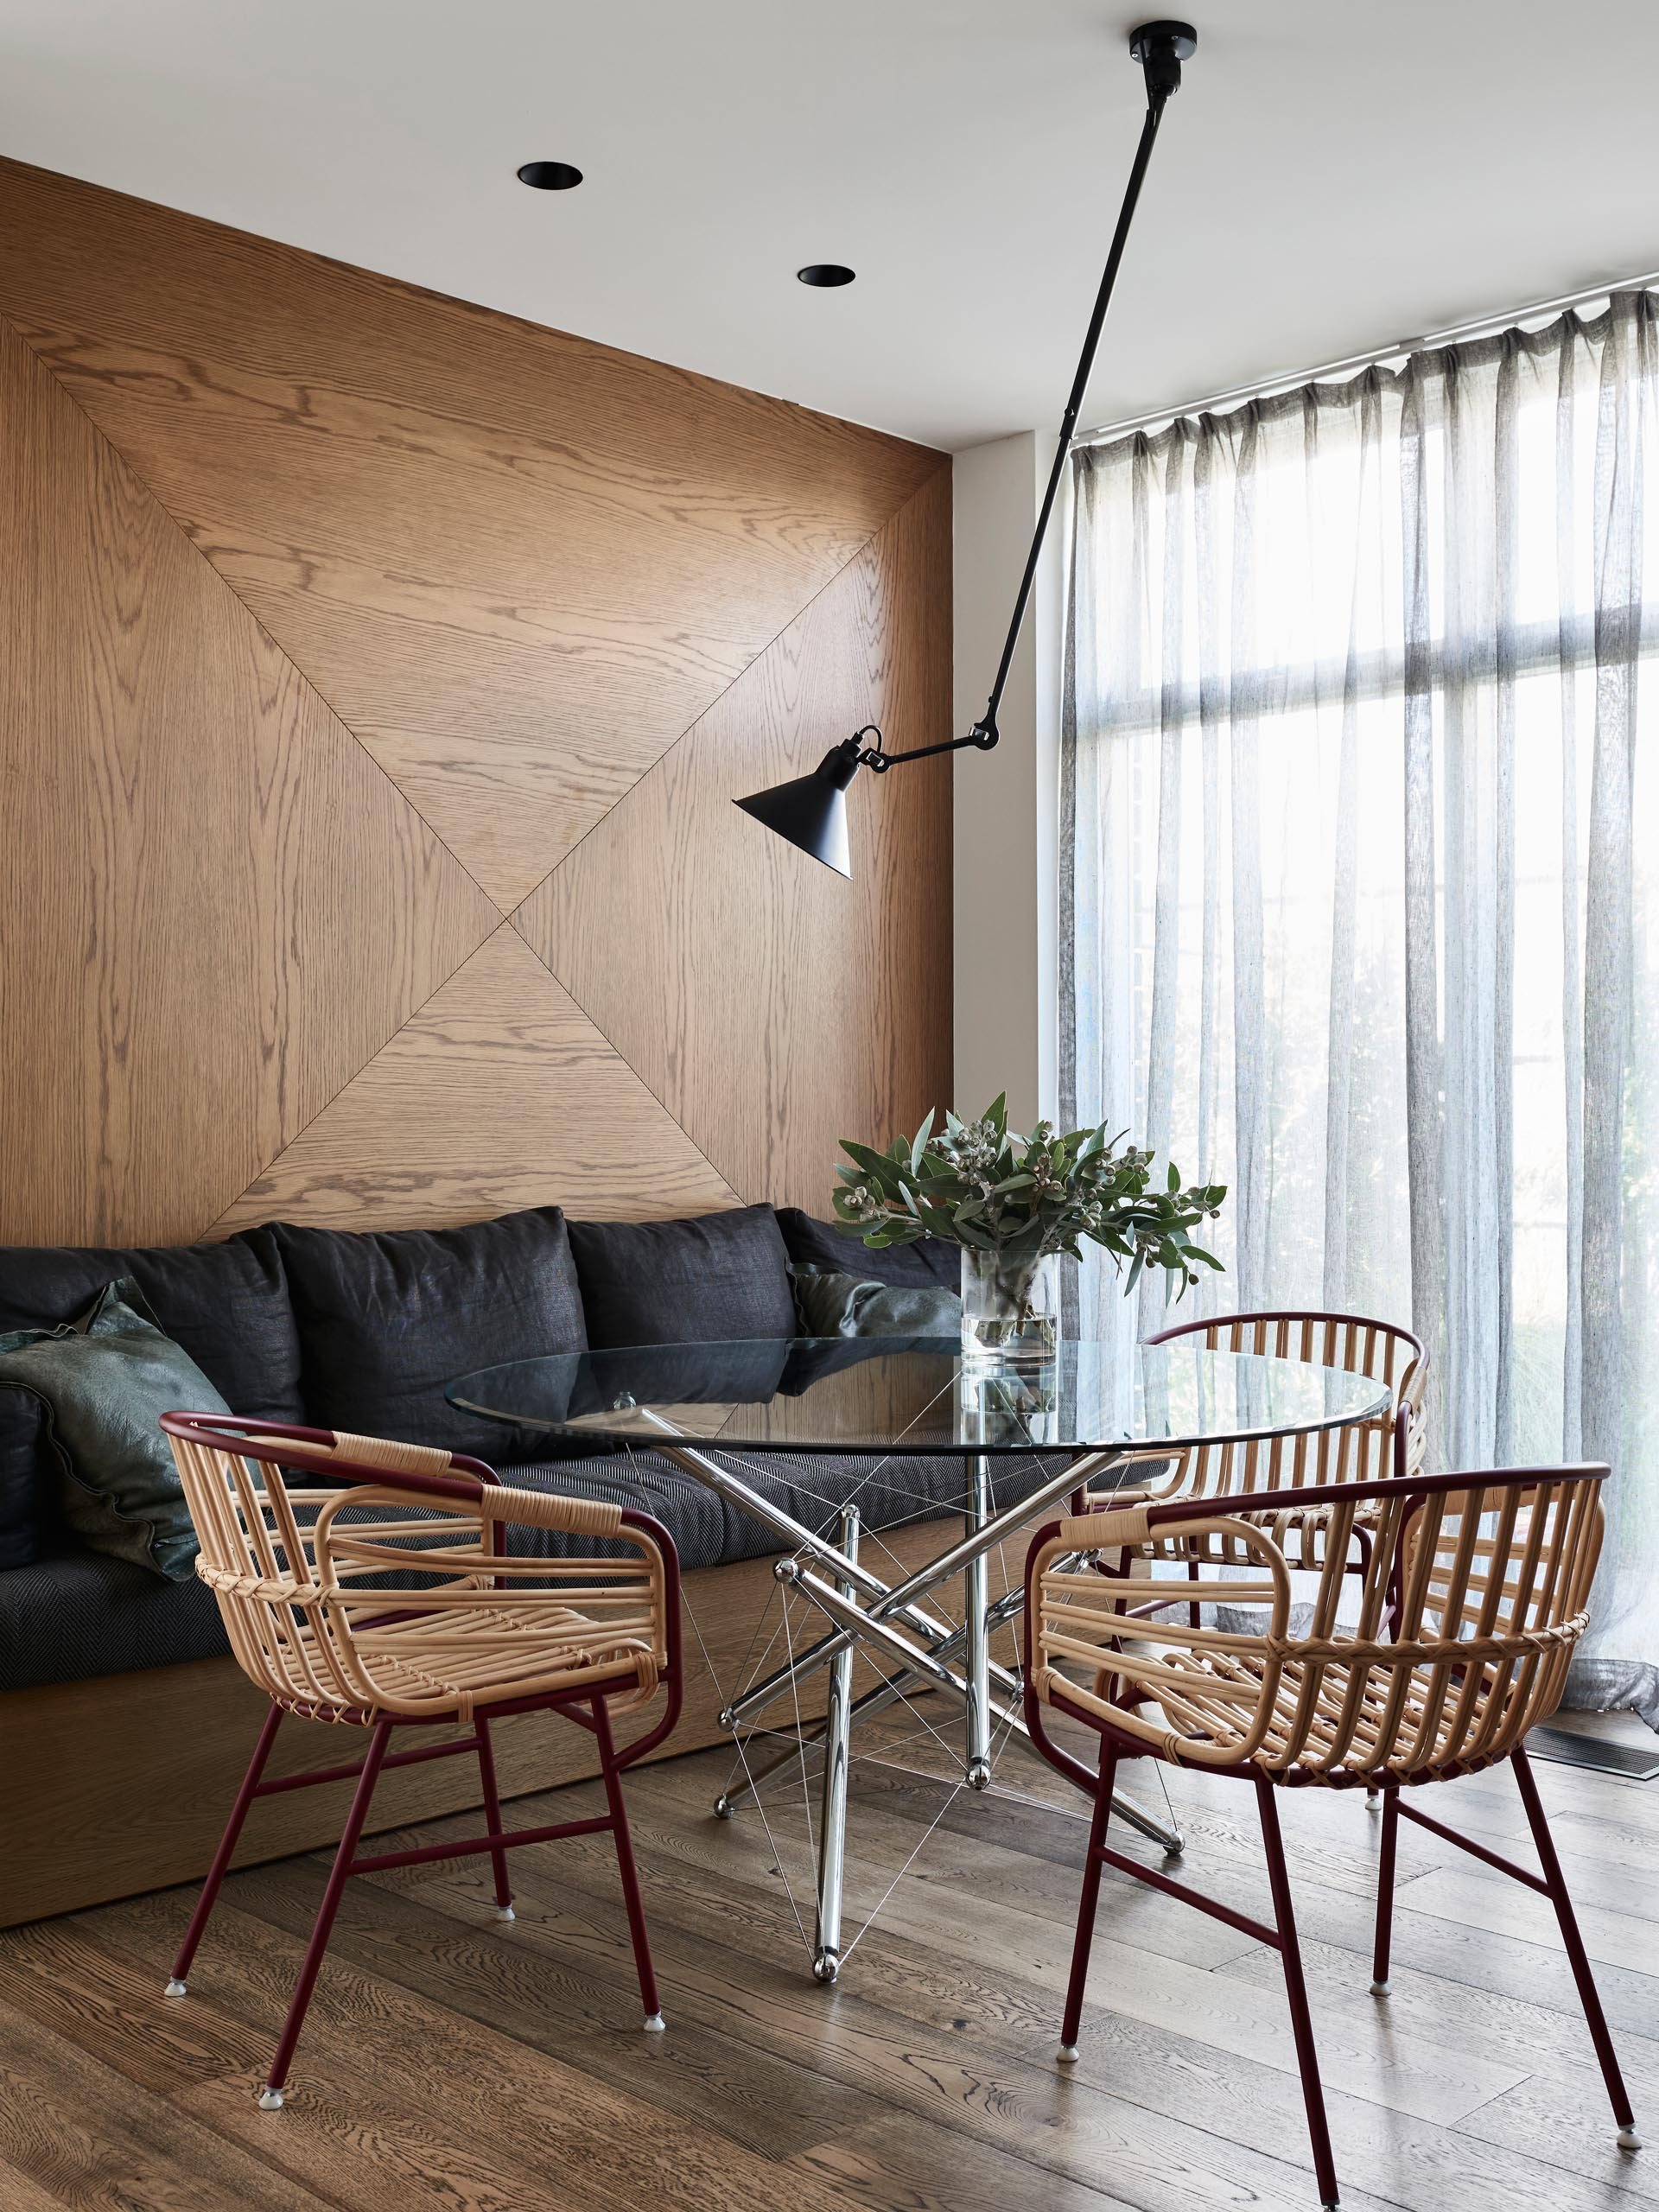 In this dining room, a wood accent wall provides a backdrop for a built-in bench with black cushions.